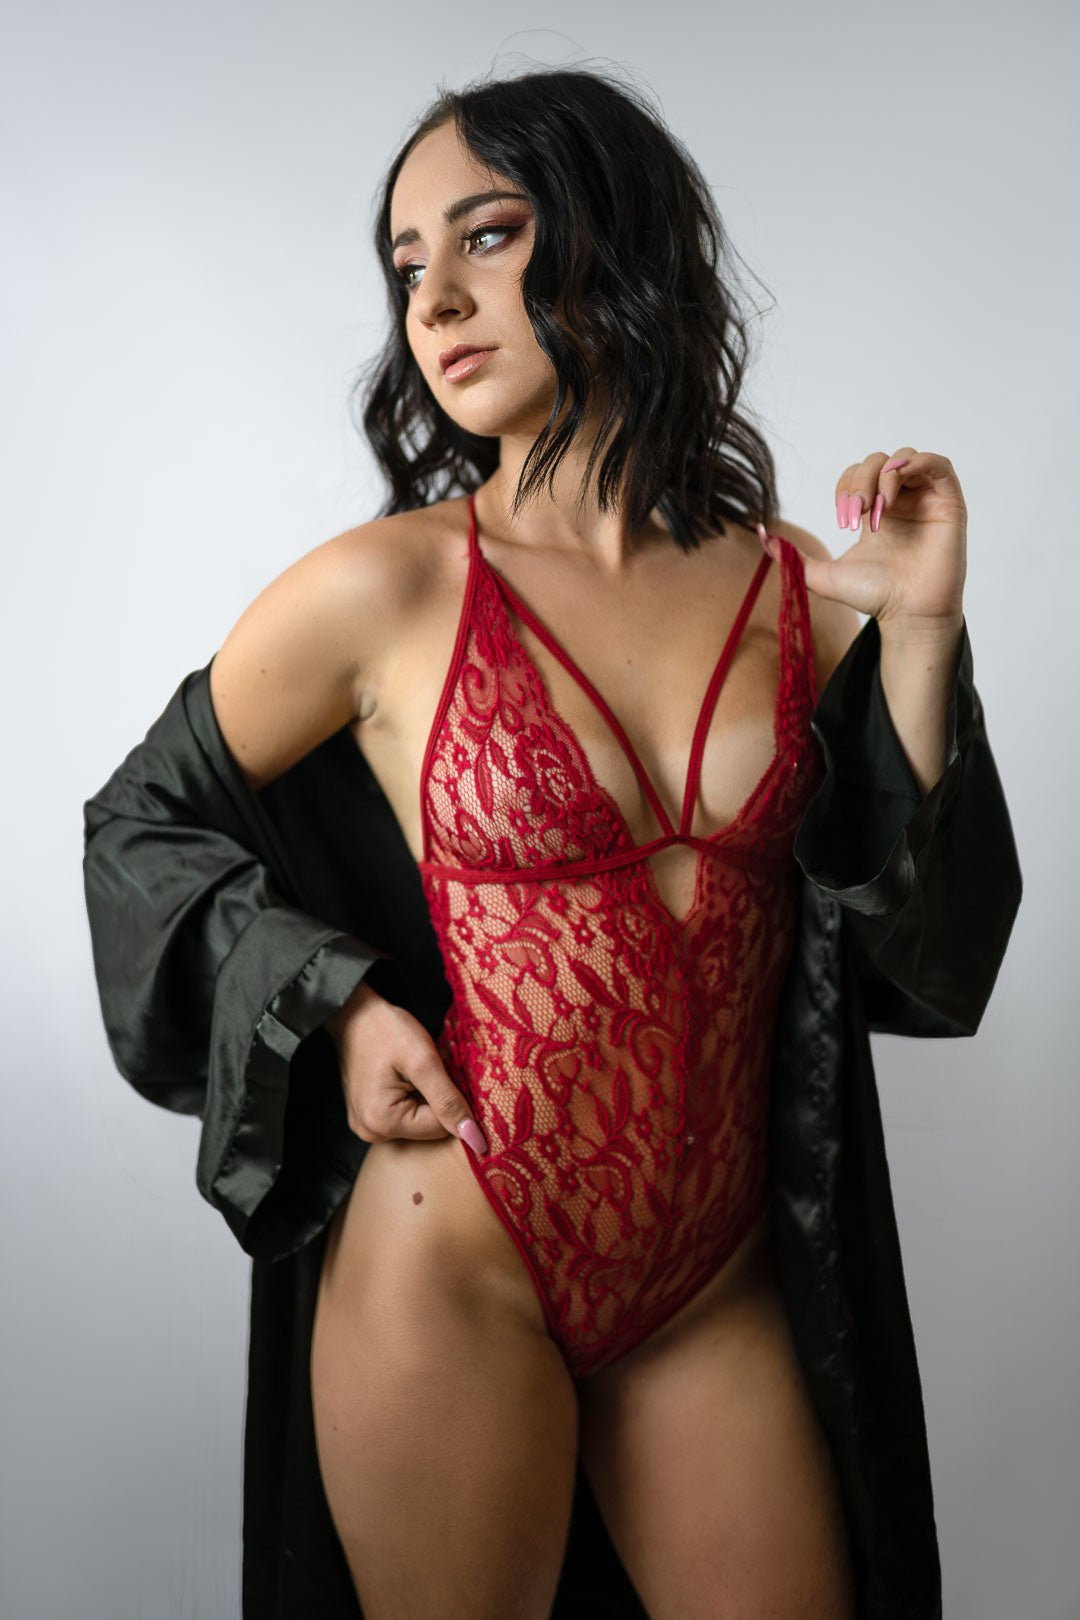 Brunette woman in red lingerie and bathrobe in a photo studio